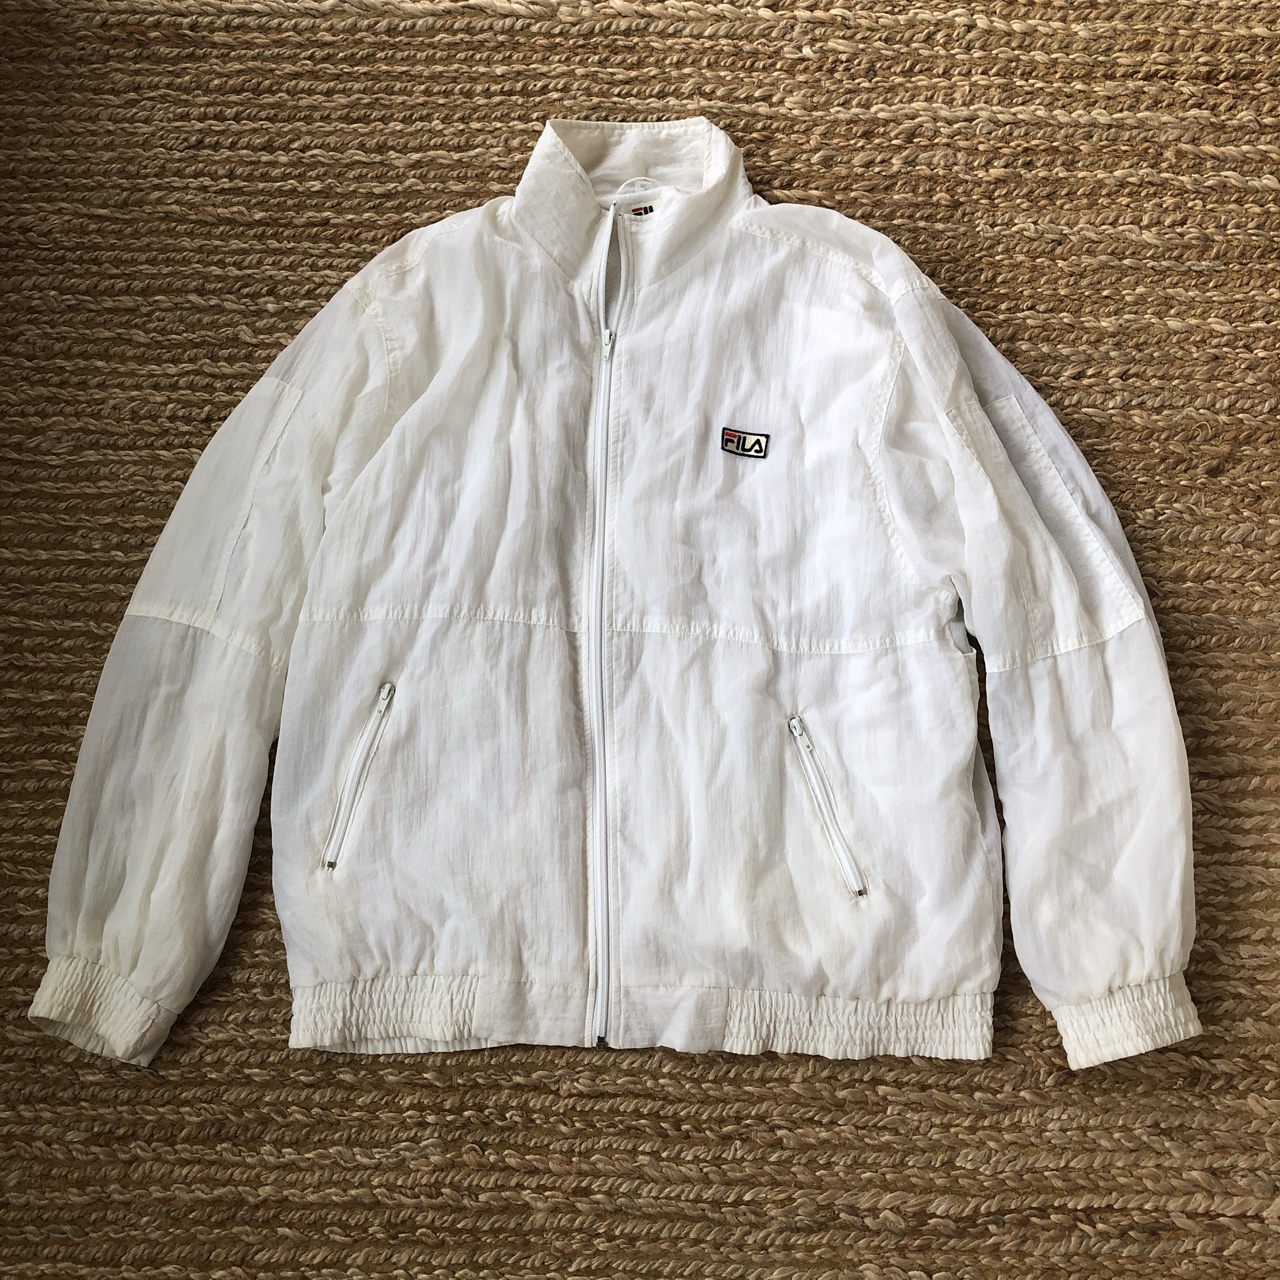 Hite Jacket Terry Cloth Lined Collar Maname